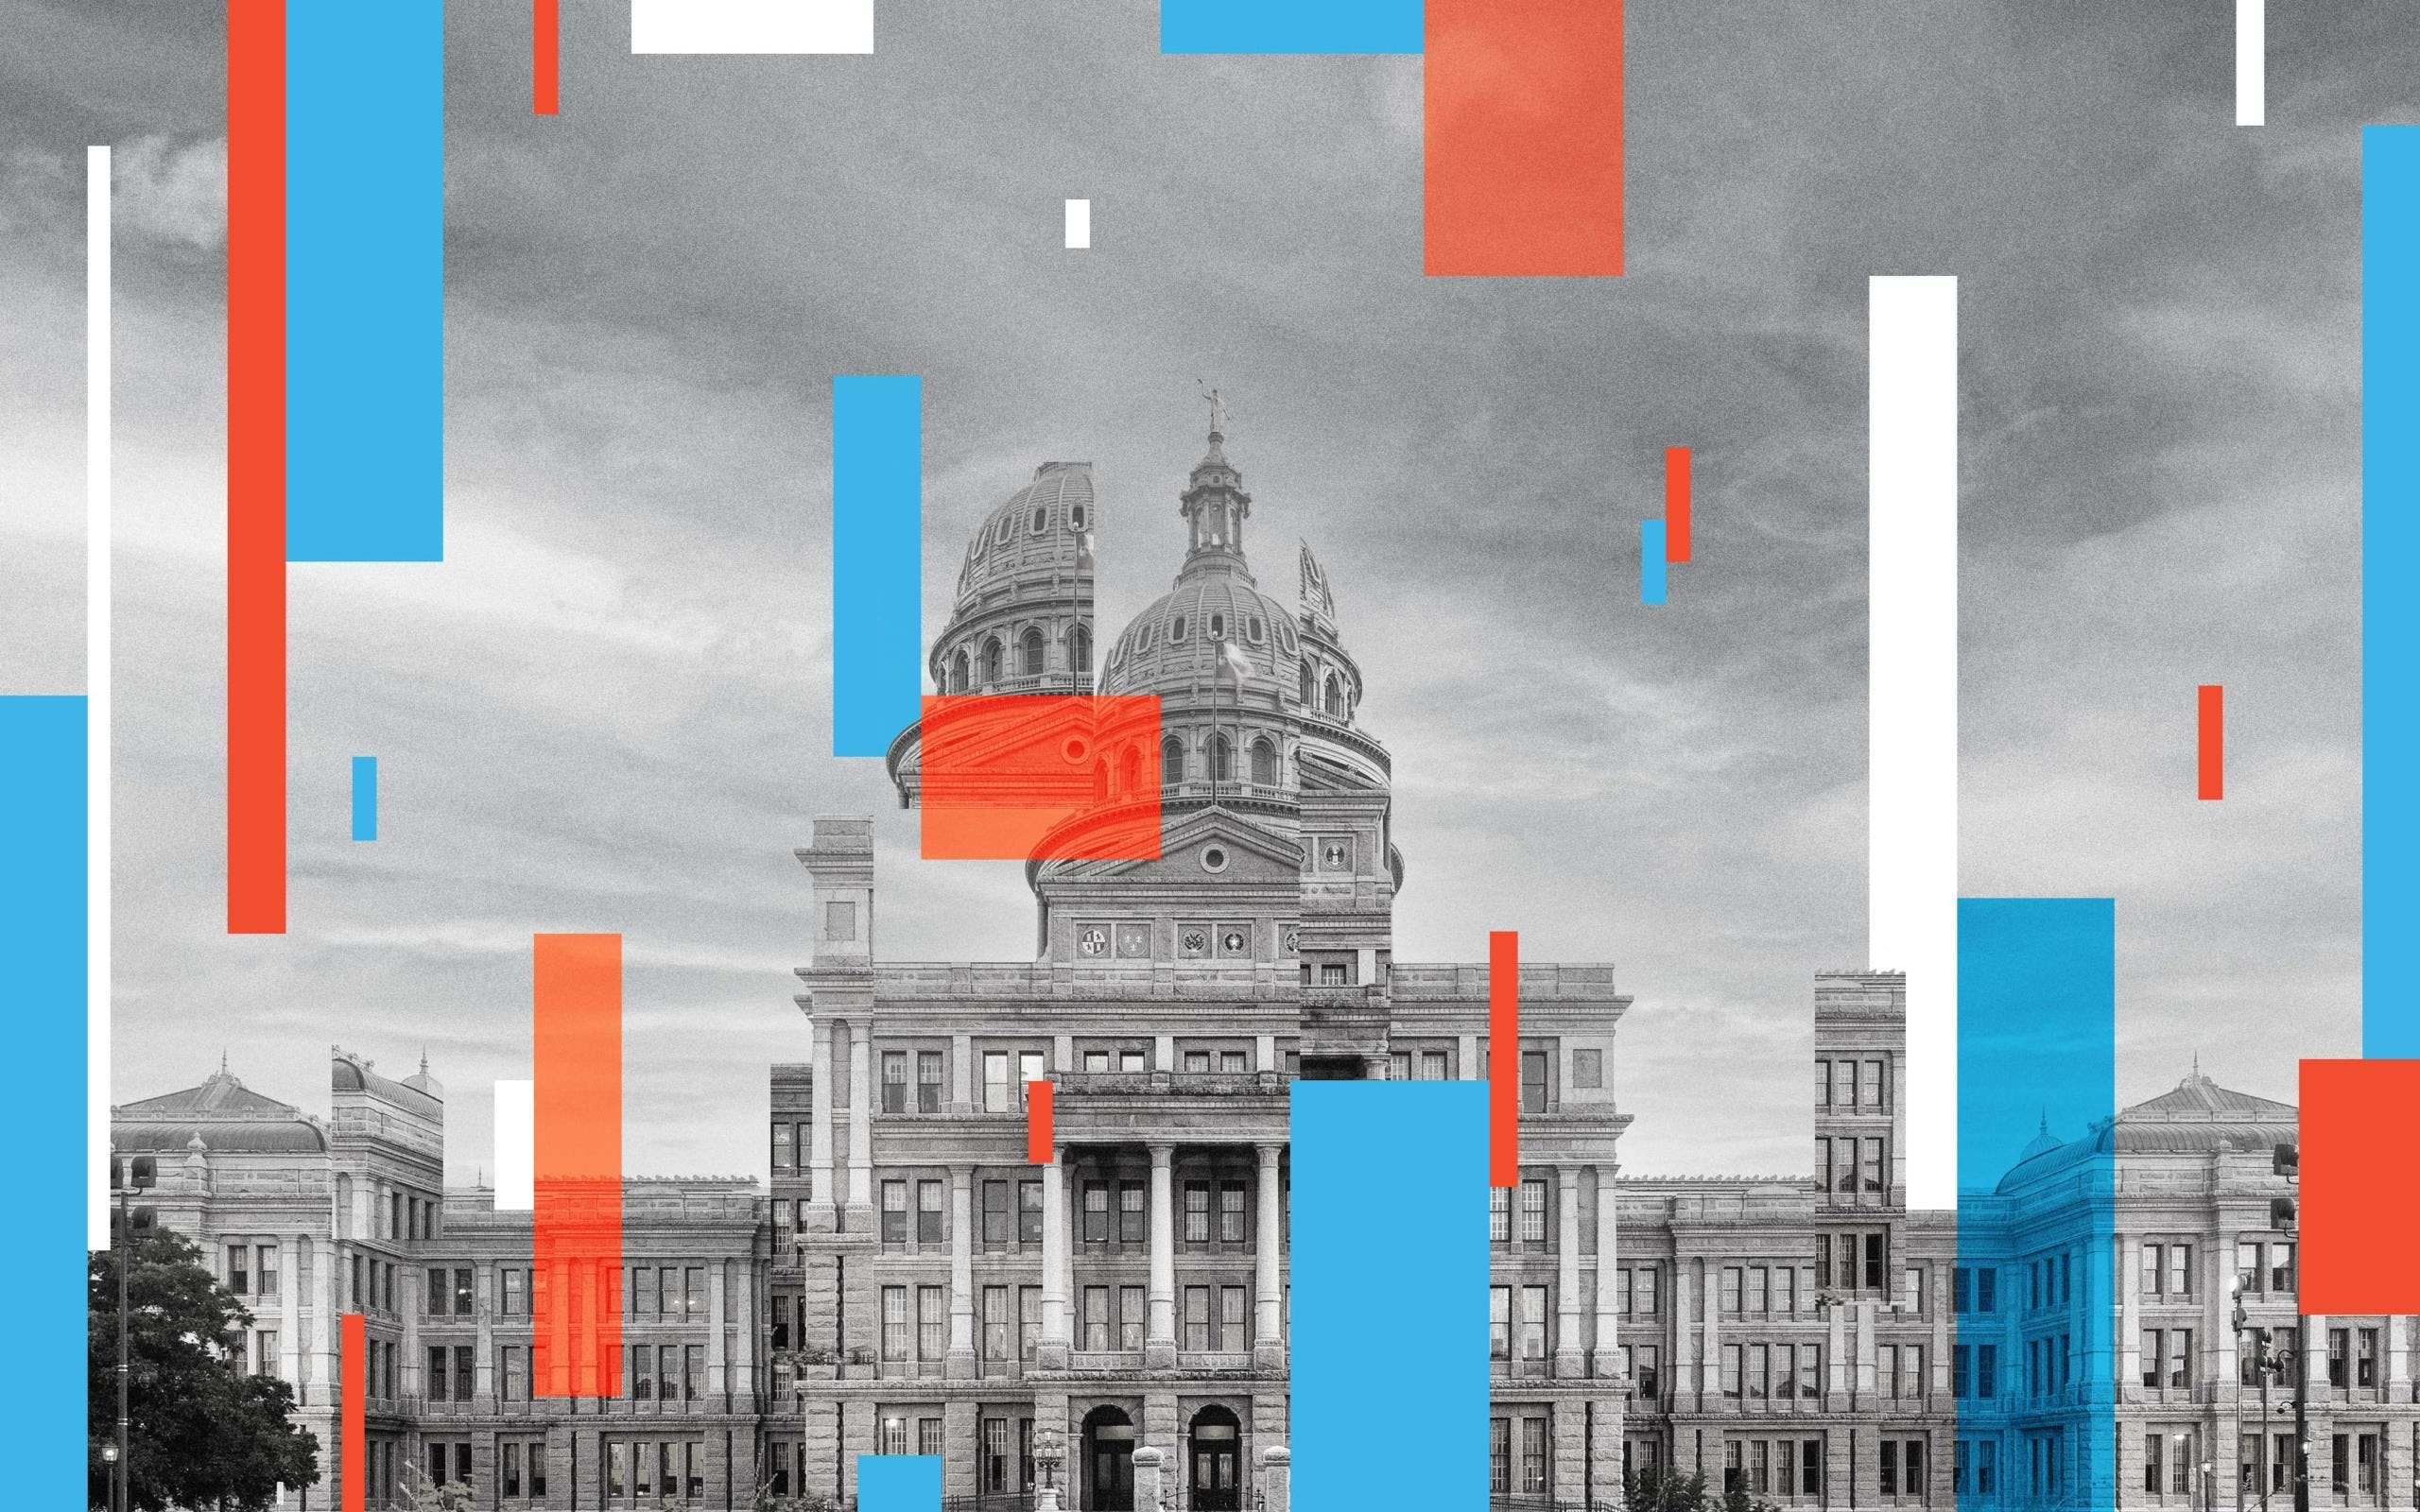 Roundup Texas Elections 2020 Texas Monthly In recent years very rapid development took place in this town and it looks more like a large modern city these days, especially the northern part of the city. texas elections 2020 texas monthly